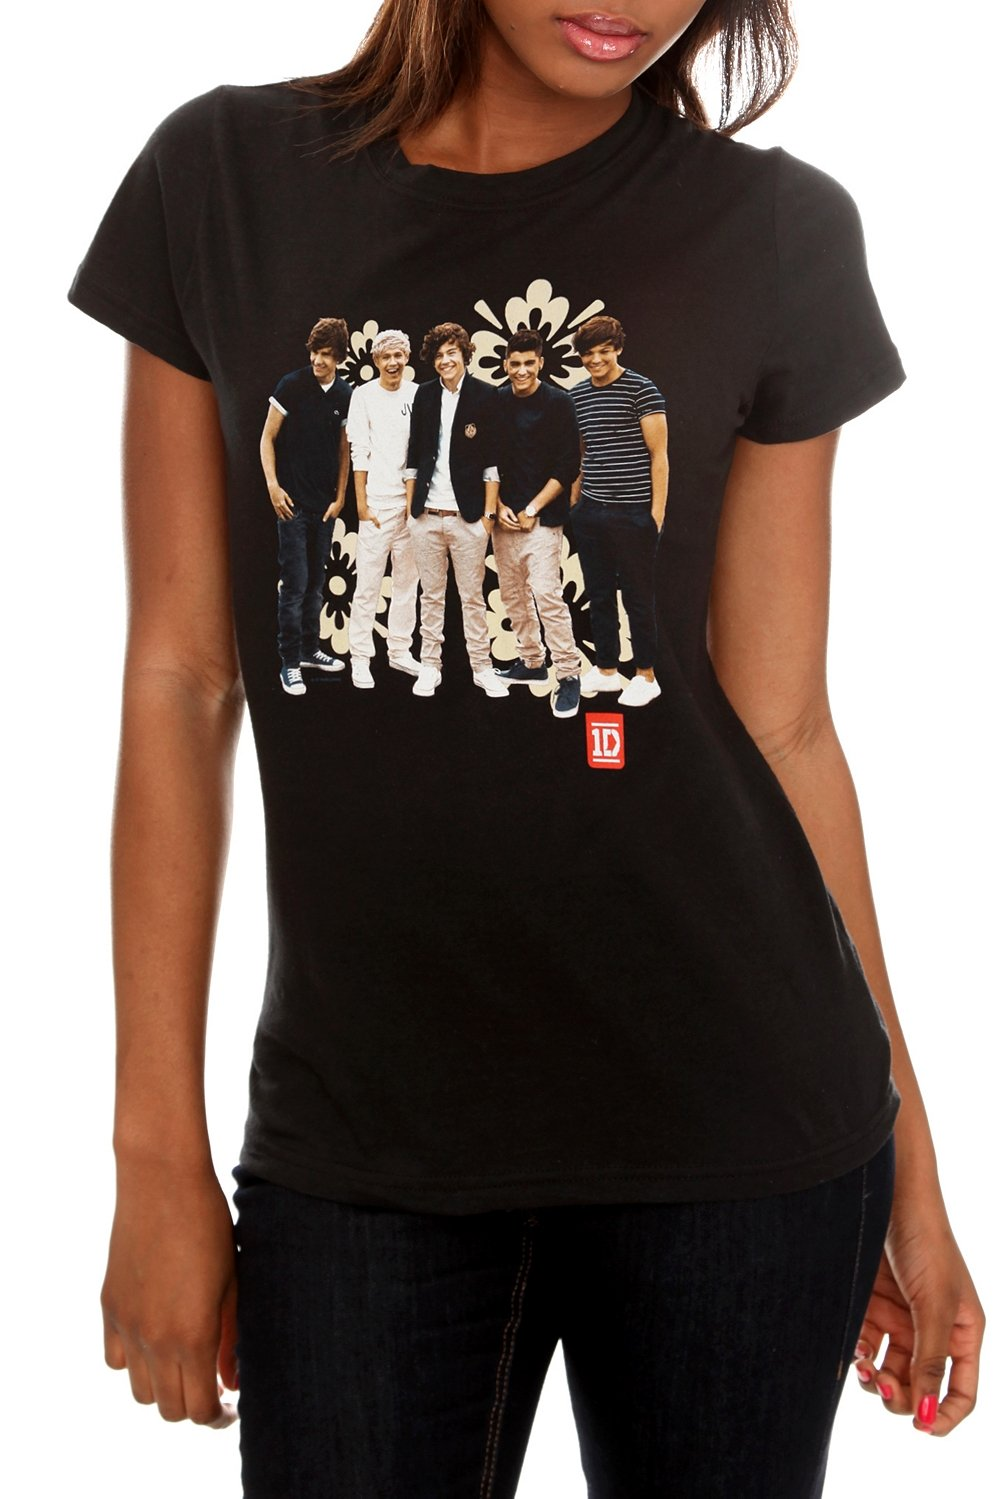 Pop quiz: Who is your daughter's favorite member of One Direction? If you don't know then you better play it safe and pick up a shirt that features them all. If she is one of the millions of girls who can't get enough of these guys, then we predict that receiving a One Direction t-shirt from you as a gift should launch you into BFF status easily.